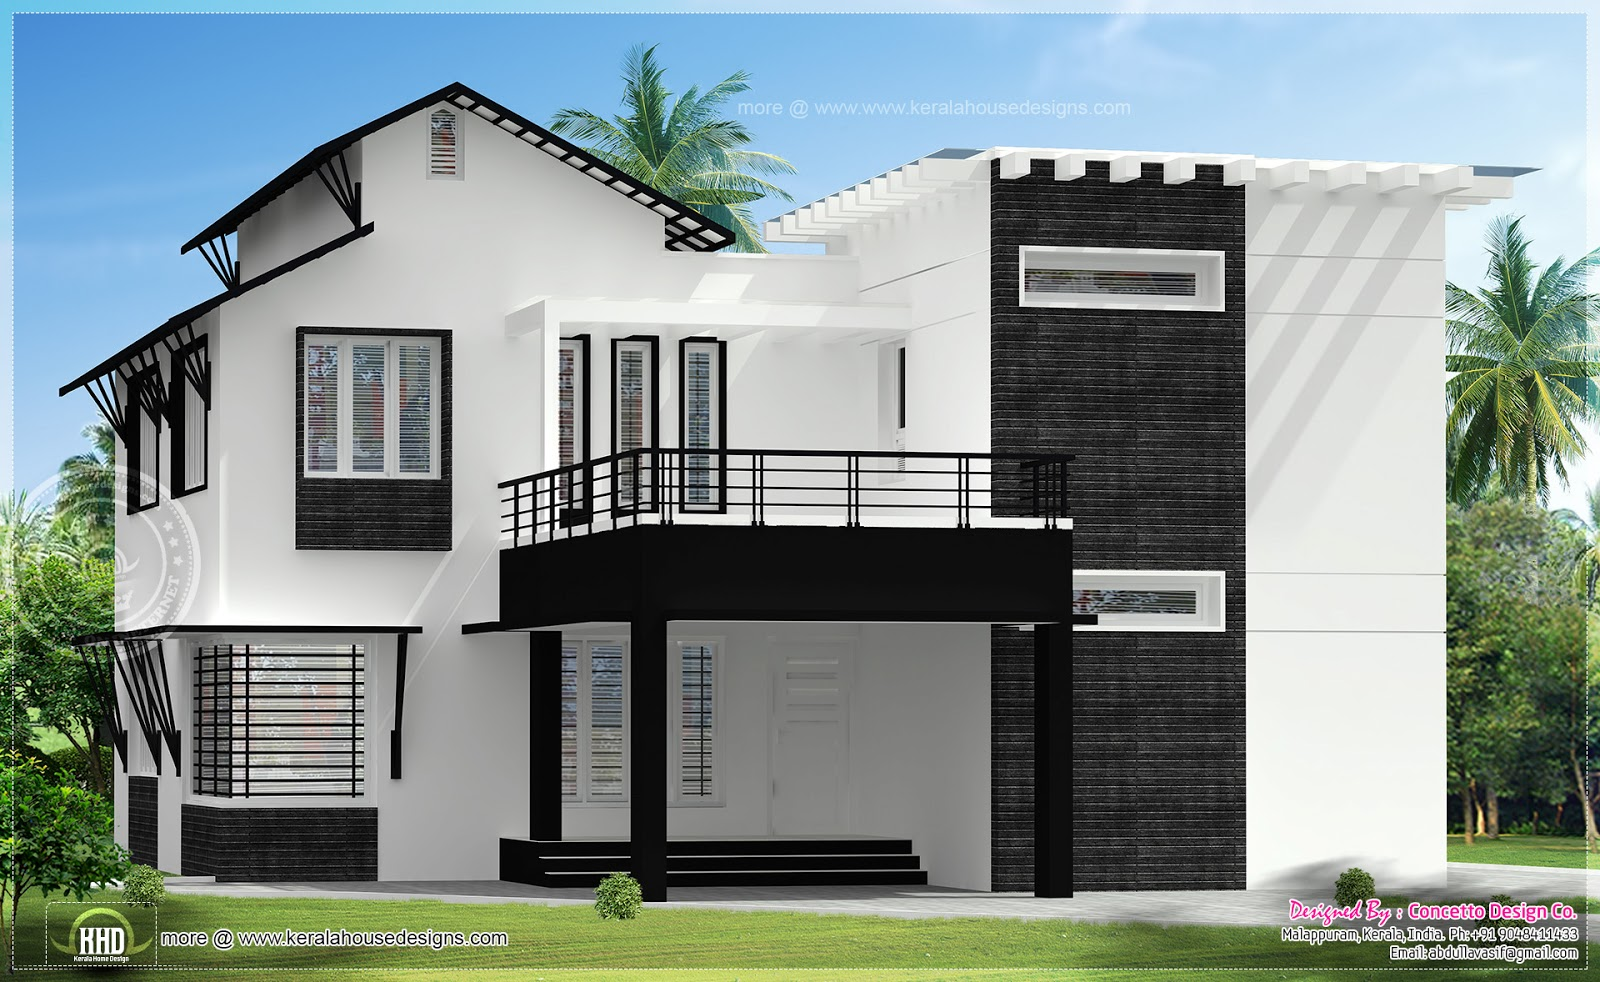 Different House Plans 5 Different House Exteriors By Concetto Design House